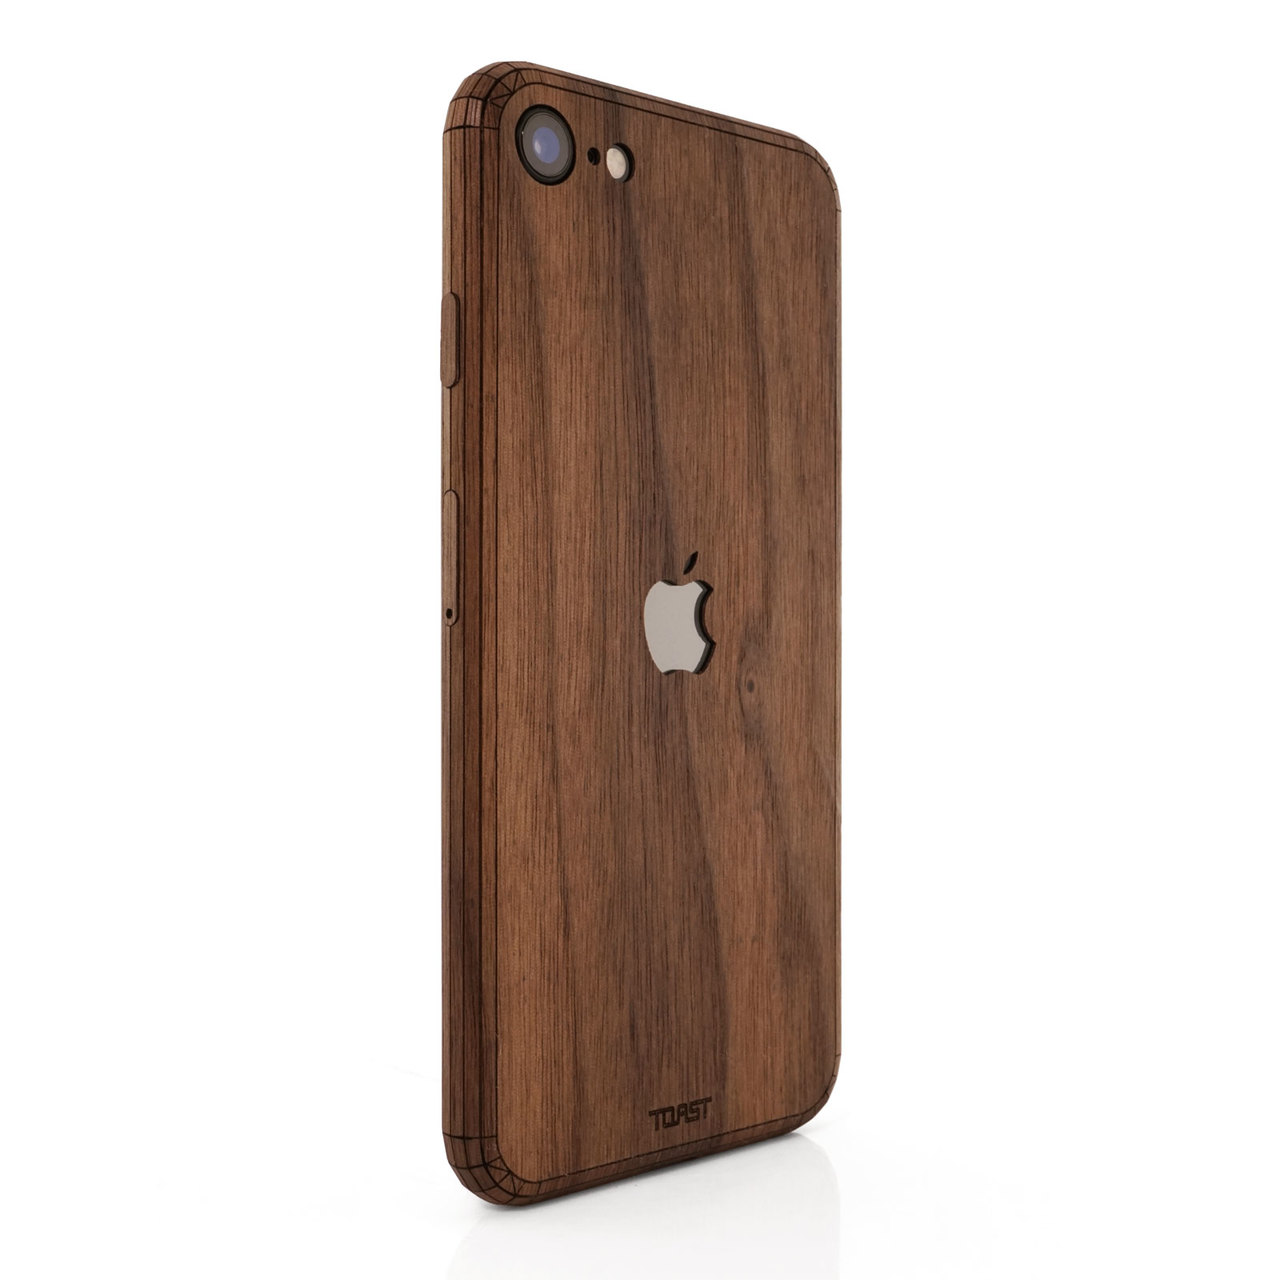 Toast iPhone SE Wood Cover Review